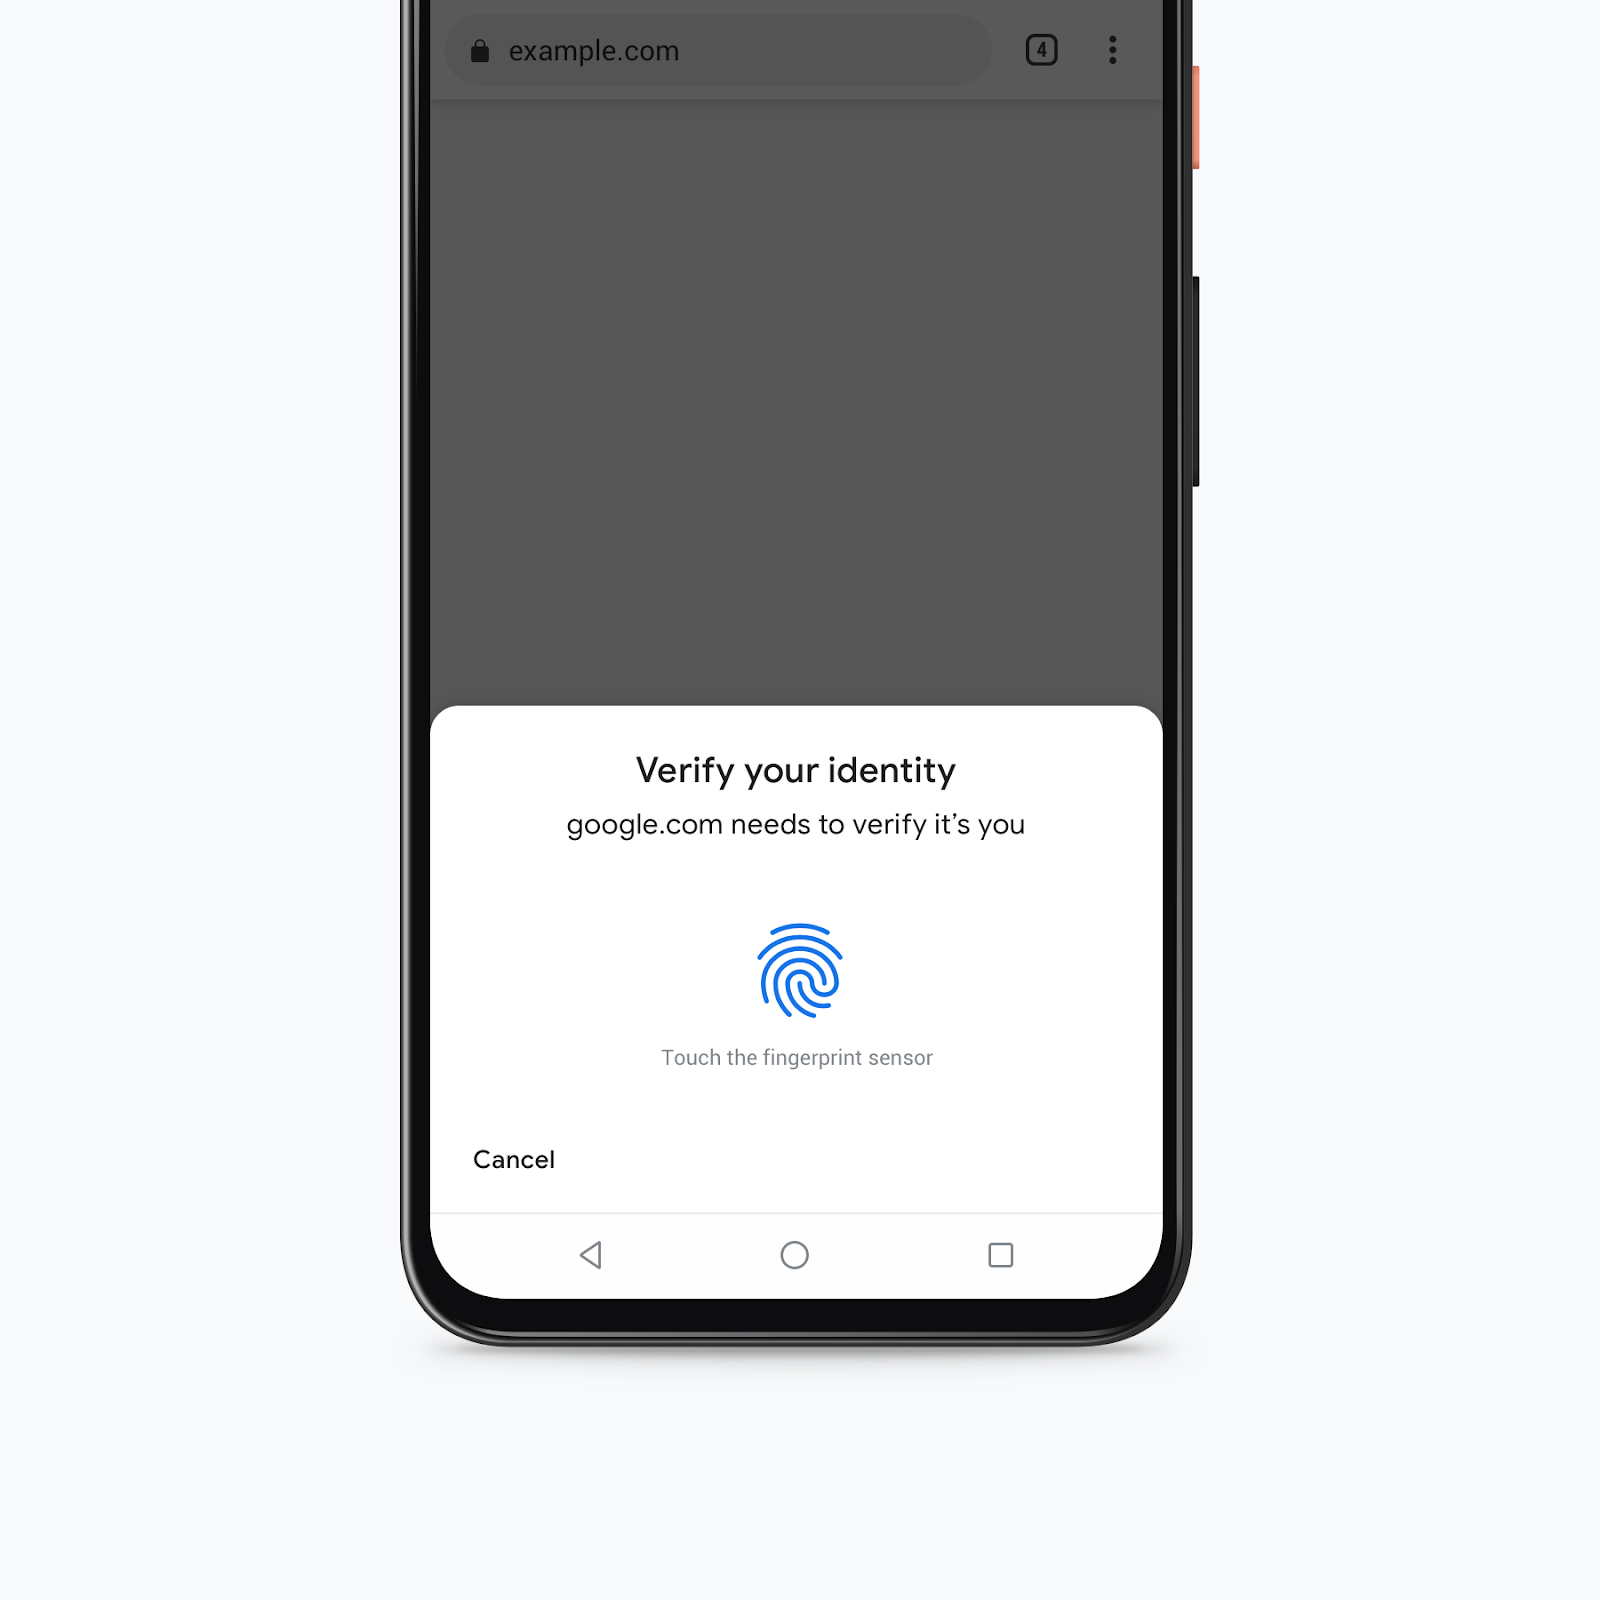 Google Is Adding New Features To Make Chrome Autofill More Secure, Rolling Out Biometric Confirmation and an Enhanced Login Experience